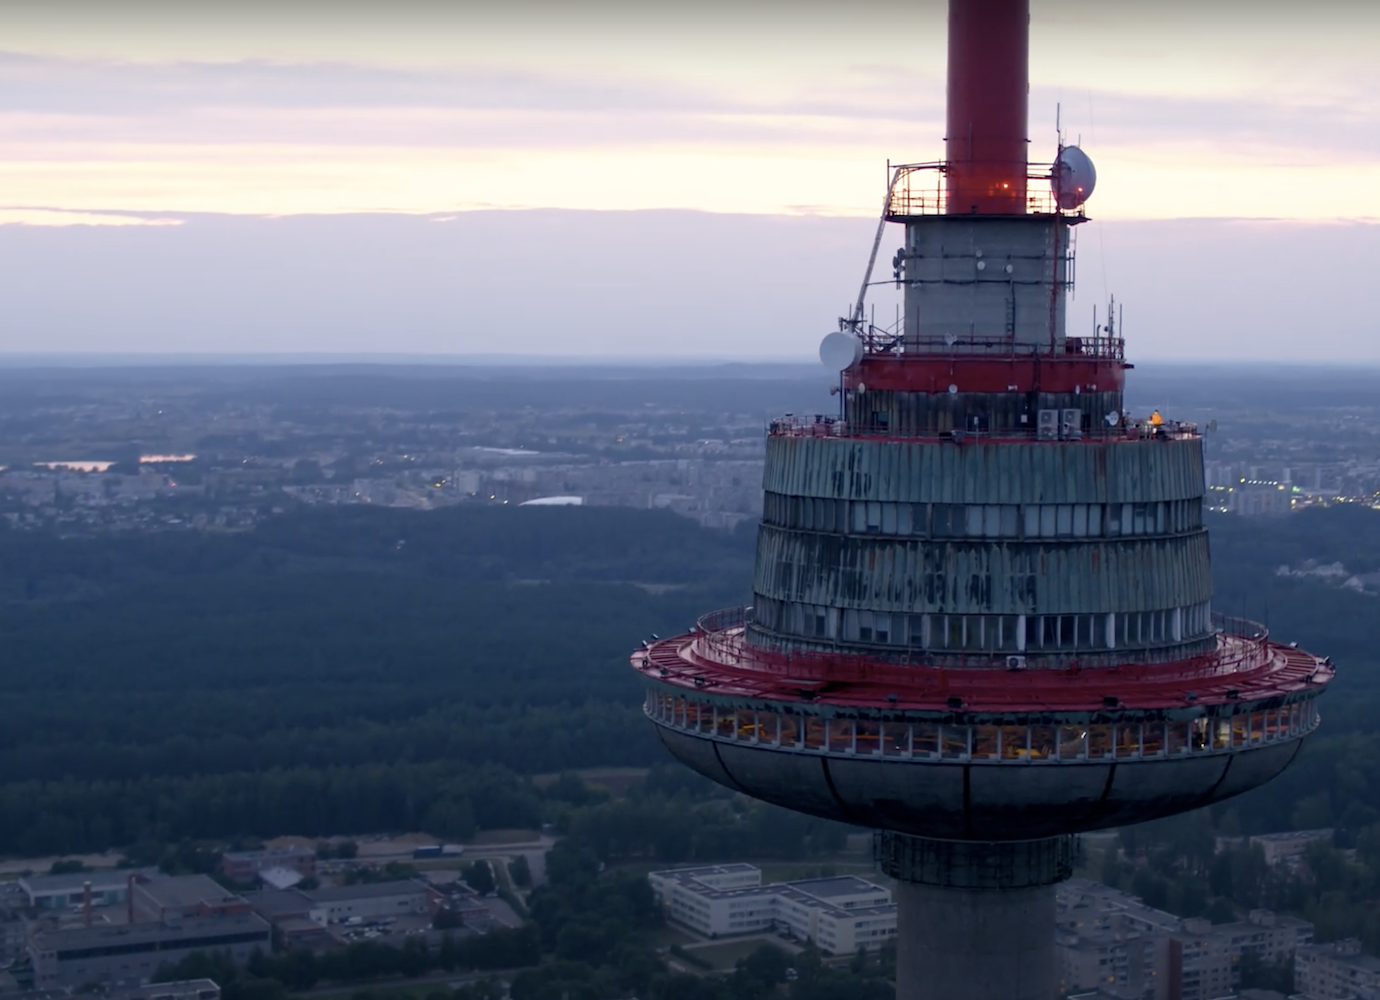 See Vilnius from the top of its tallest tower in this electronic music video